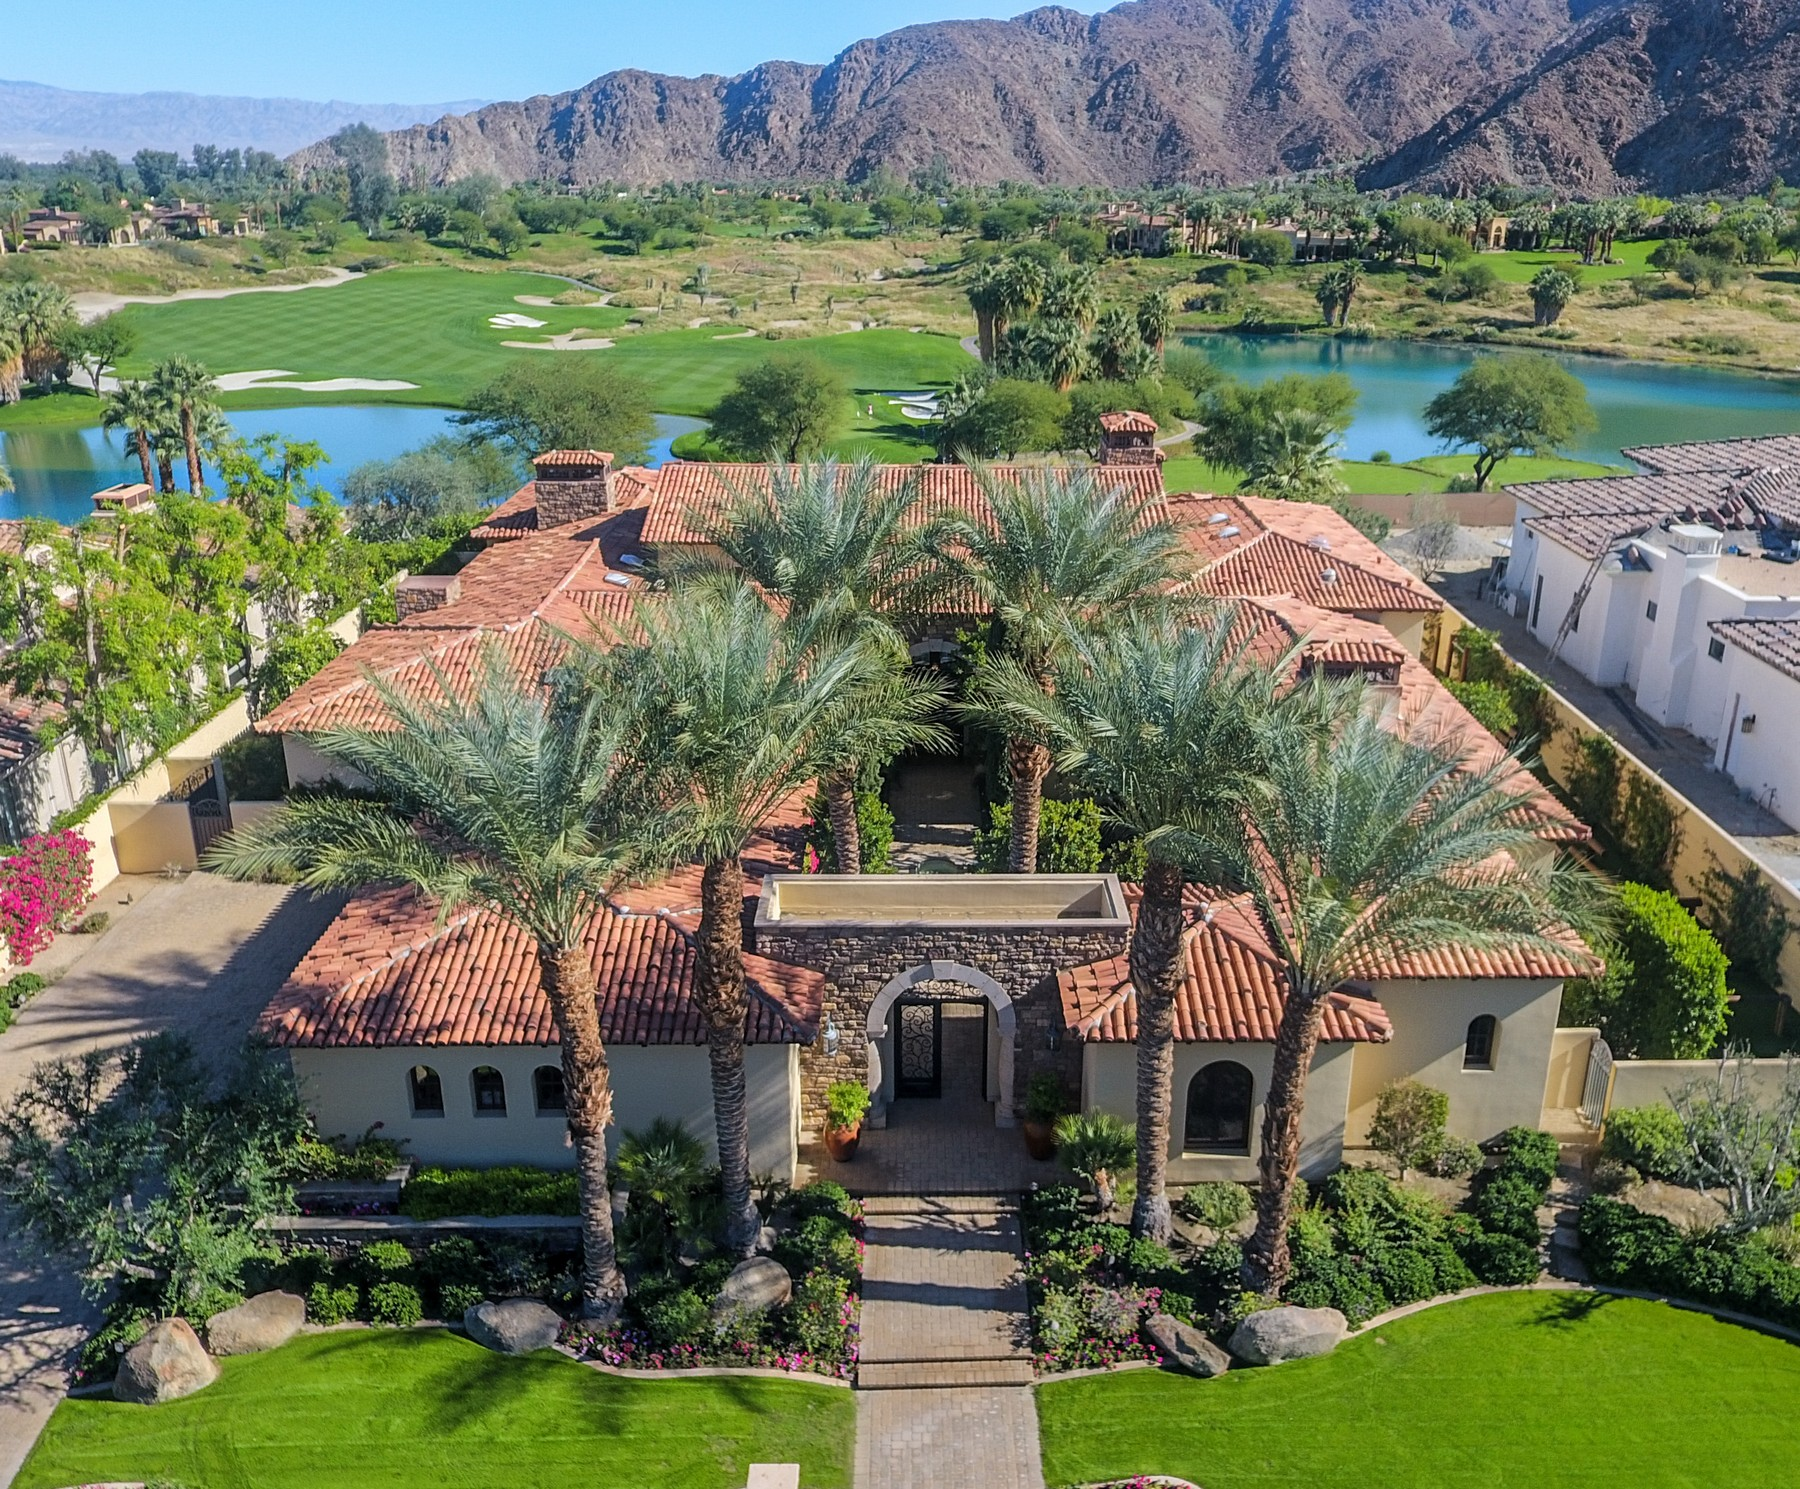 Single Family Home for Sale at 52530 Del Gato Drive La Quinta, California 92253 United States